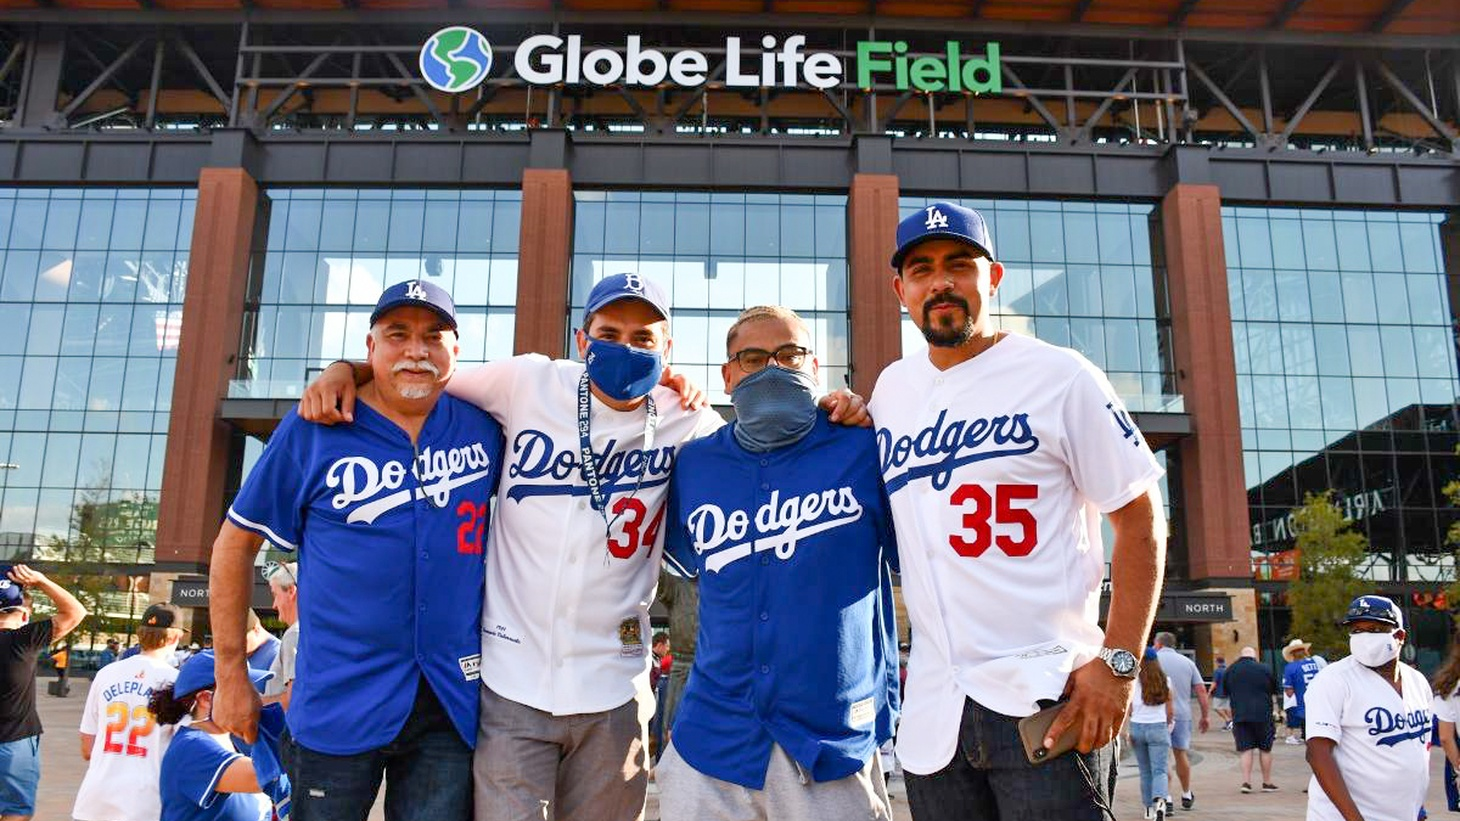 Alex Soto with fellow Dodgers fans at the Globe Life Field in Texas.